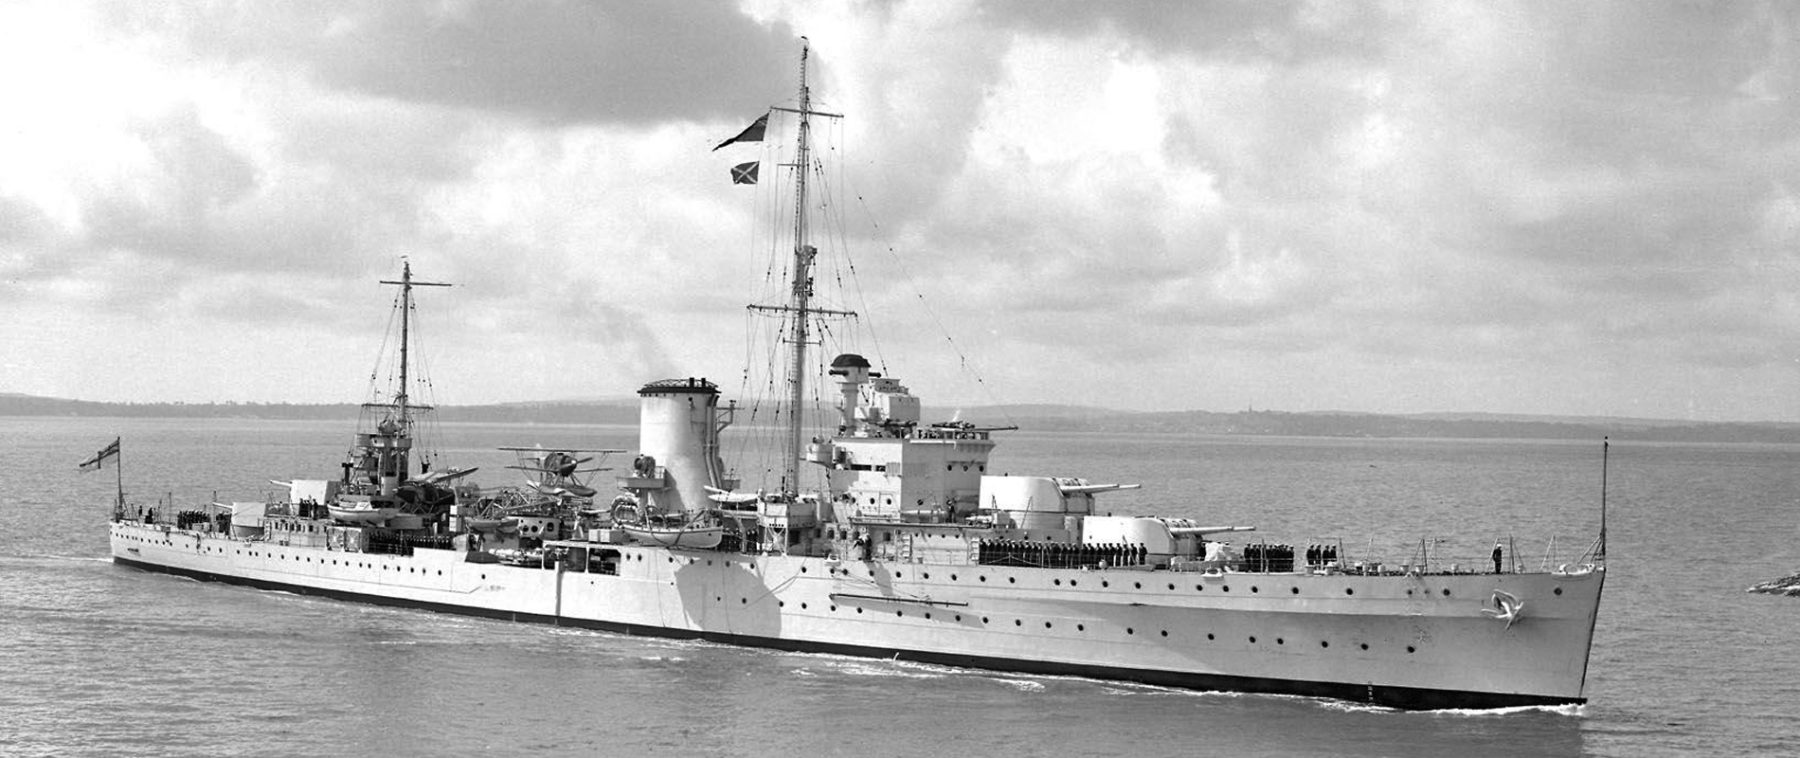 HMS Ajax before the war, circa 1936